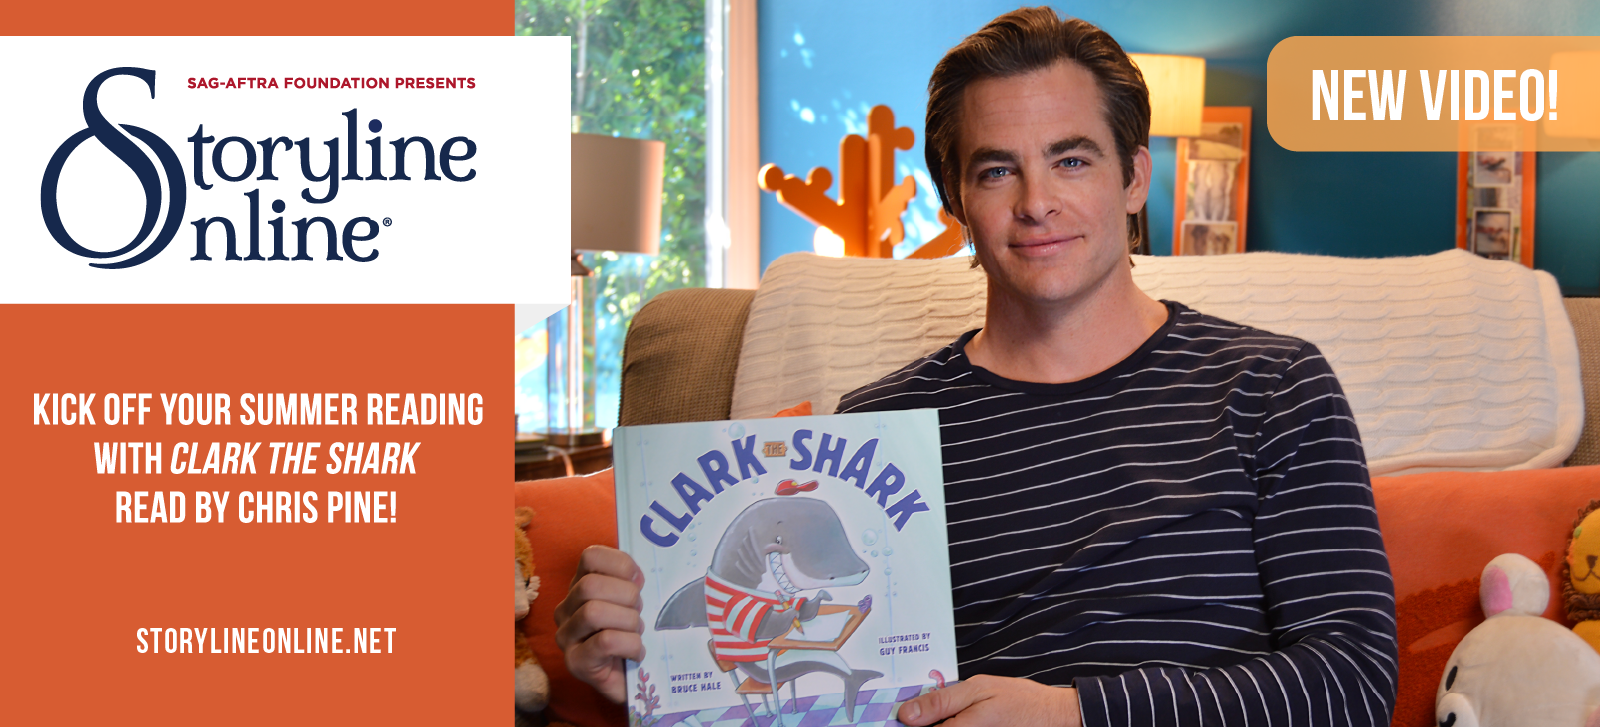 Wonder Woman_s Chris Pine Kicks Off Summer By Reading Clark the Shark for Storyline Online®